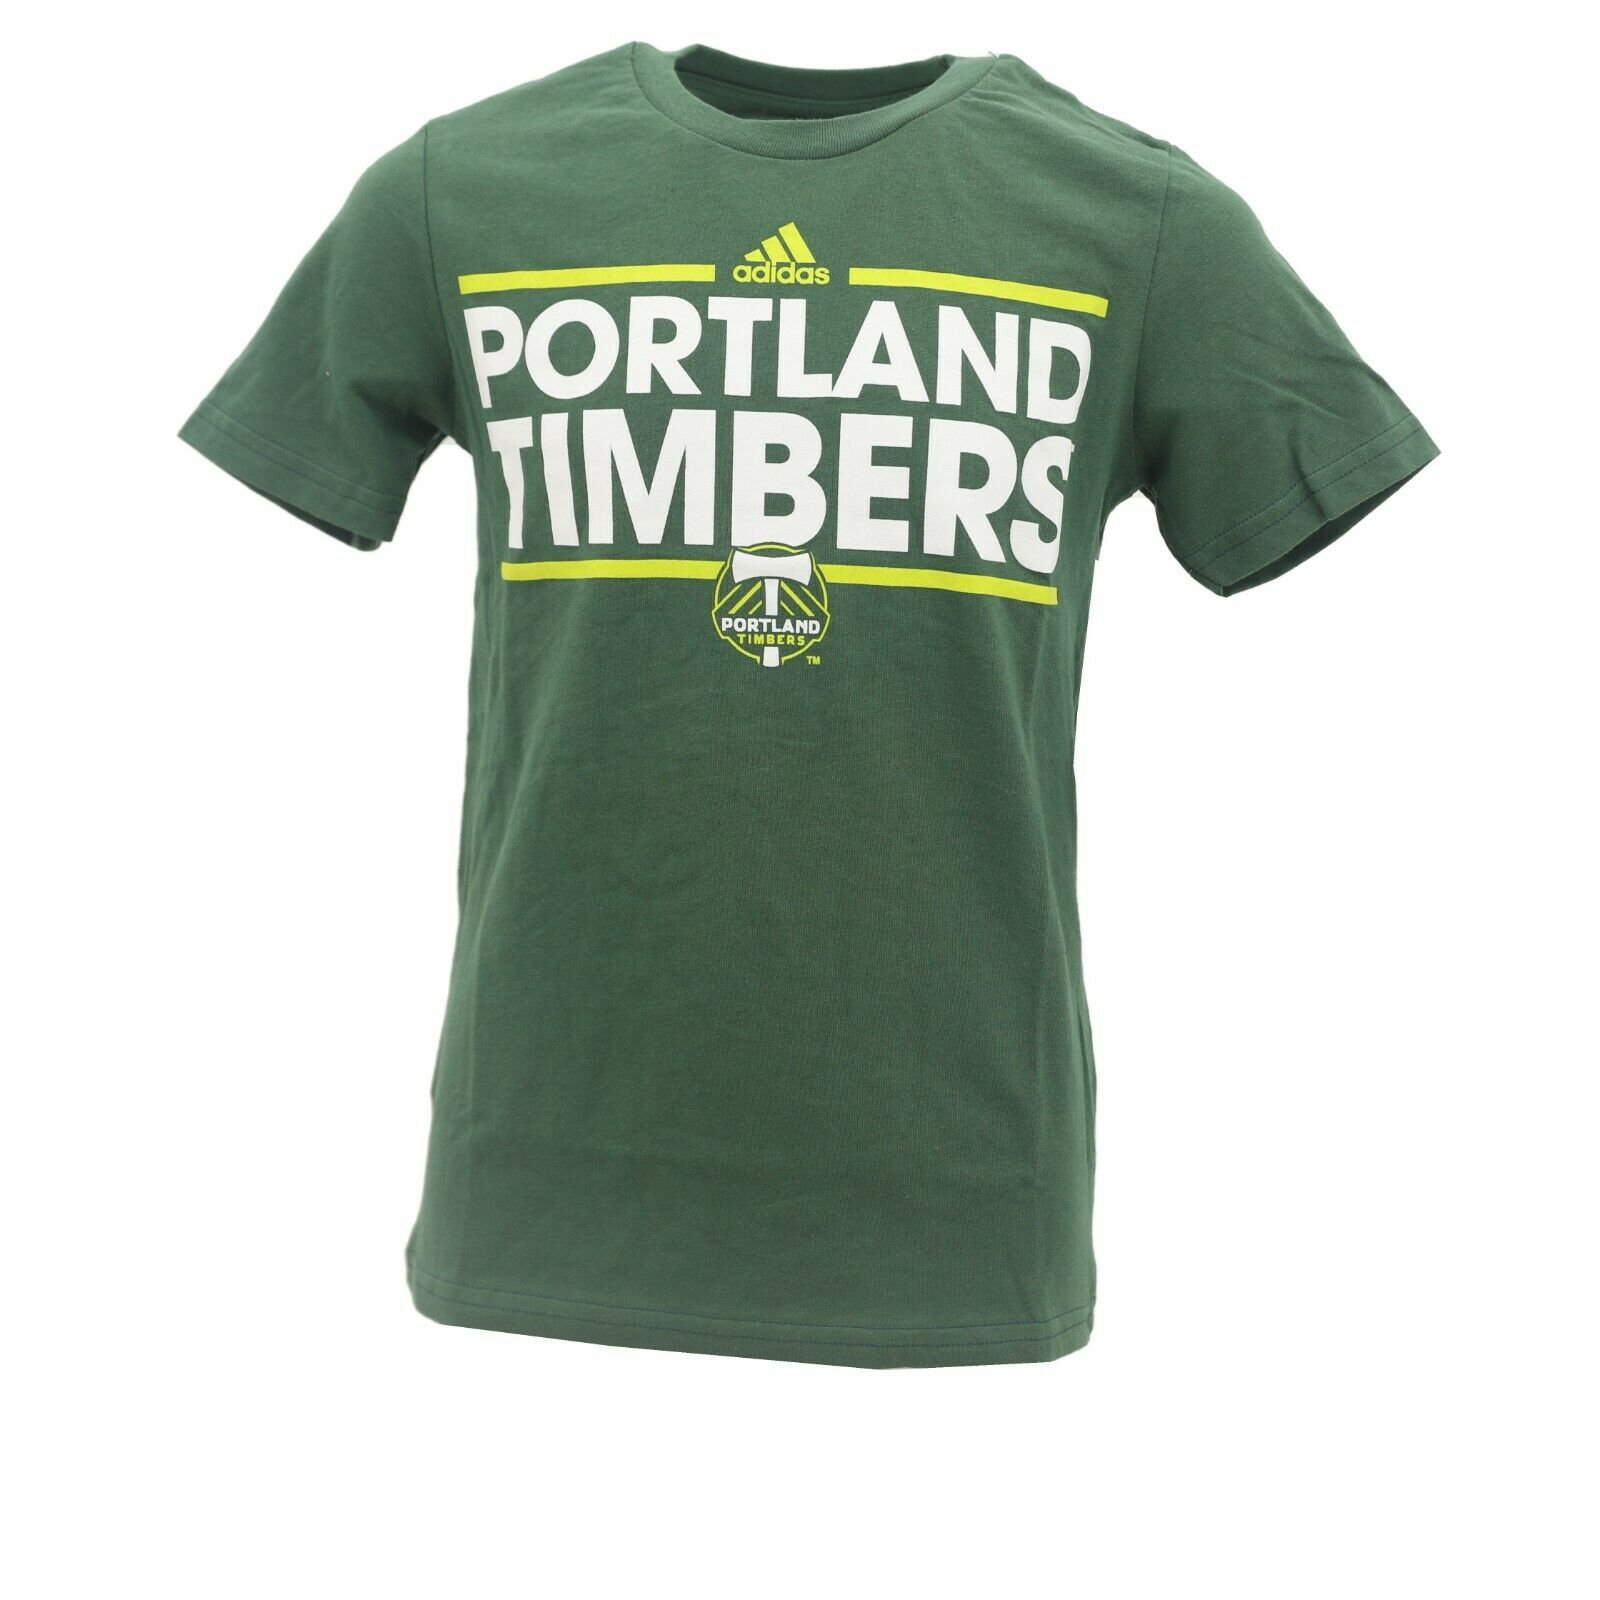 huge discount 9ca7e 87c9a Portland Timbers Official MLS Adidas Apparel Kids Youth Size ...